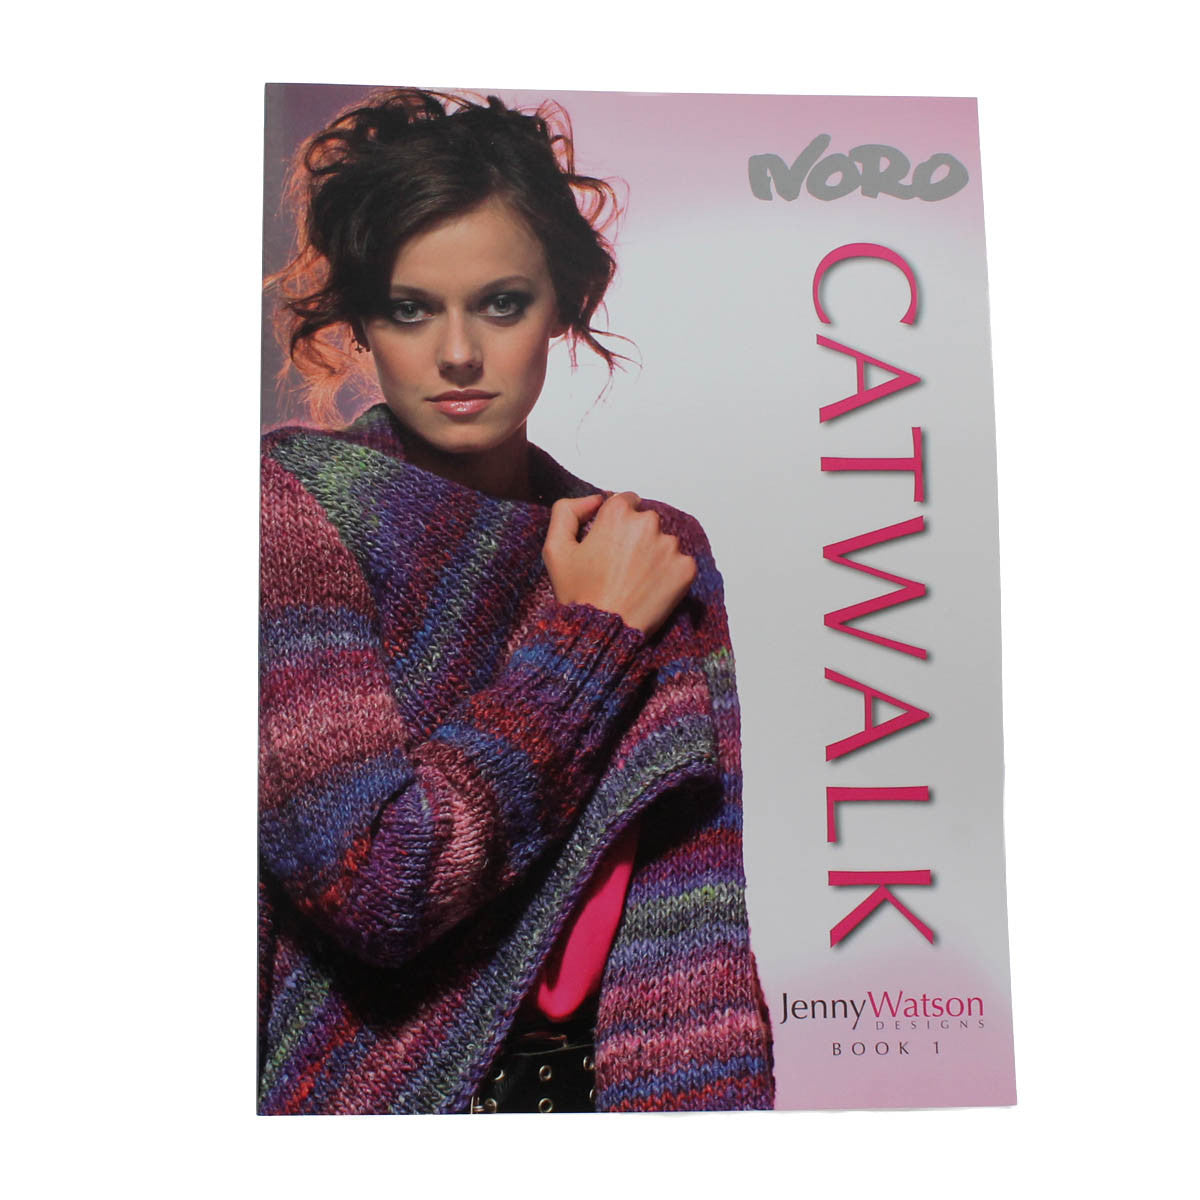 NORO CATWALK BOOK 1 by Jenny Watson Designs - 16 Fabulous Designs/Patterns